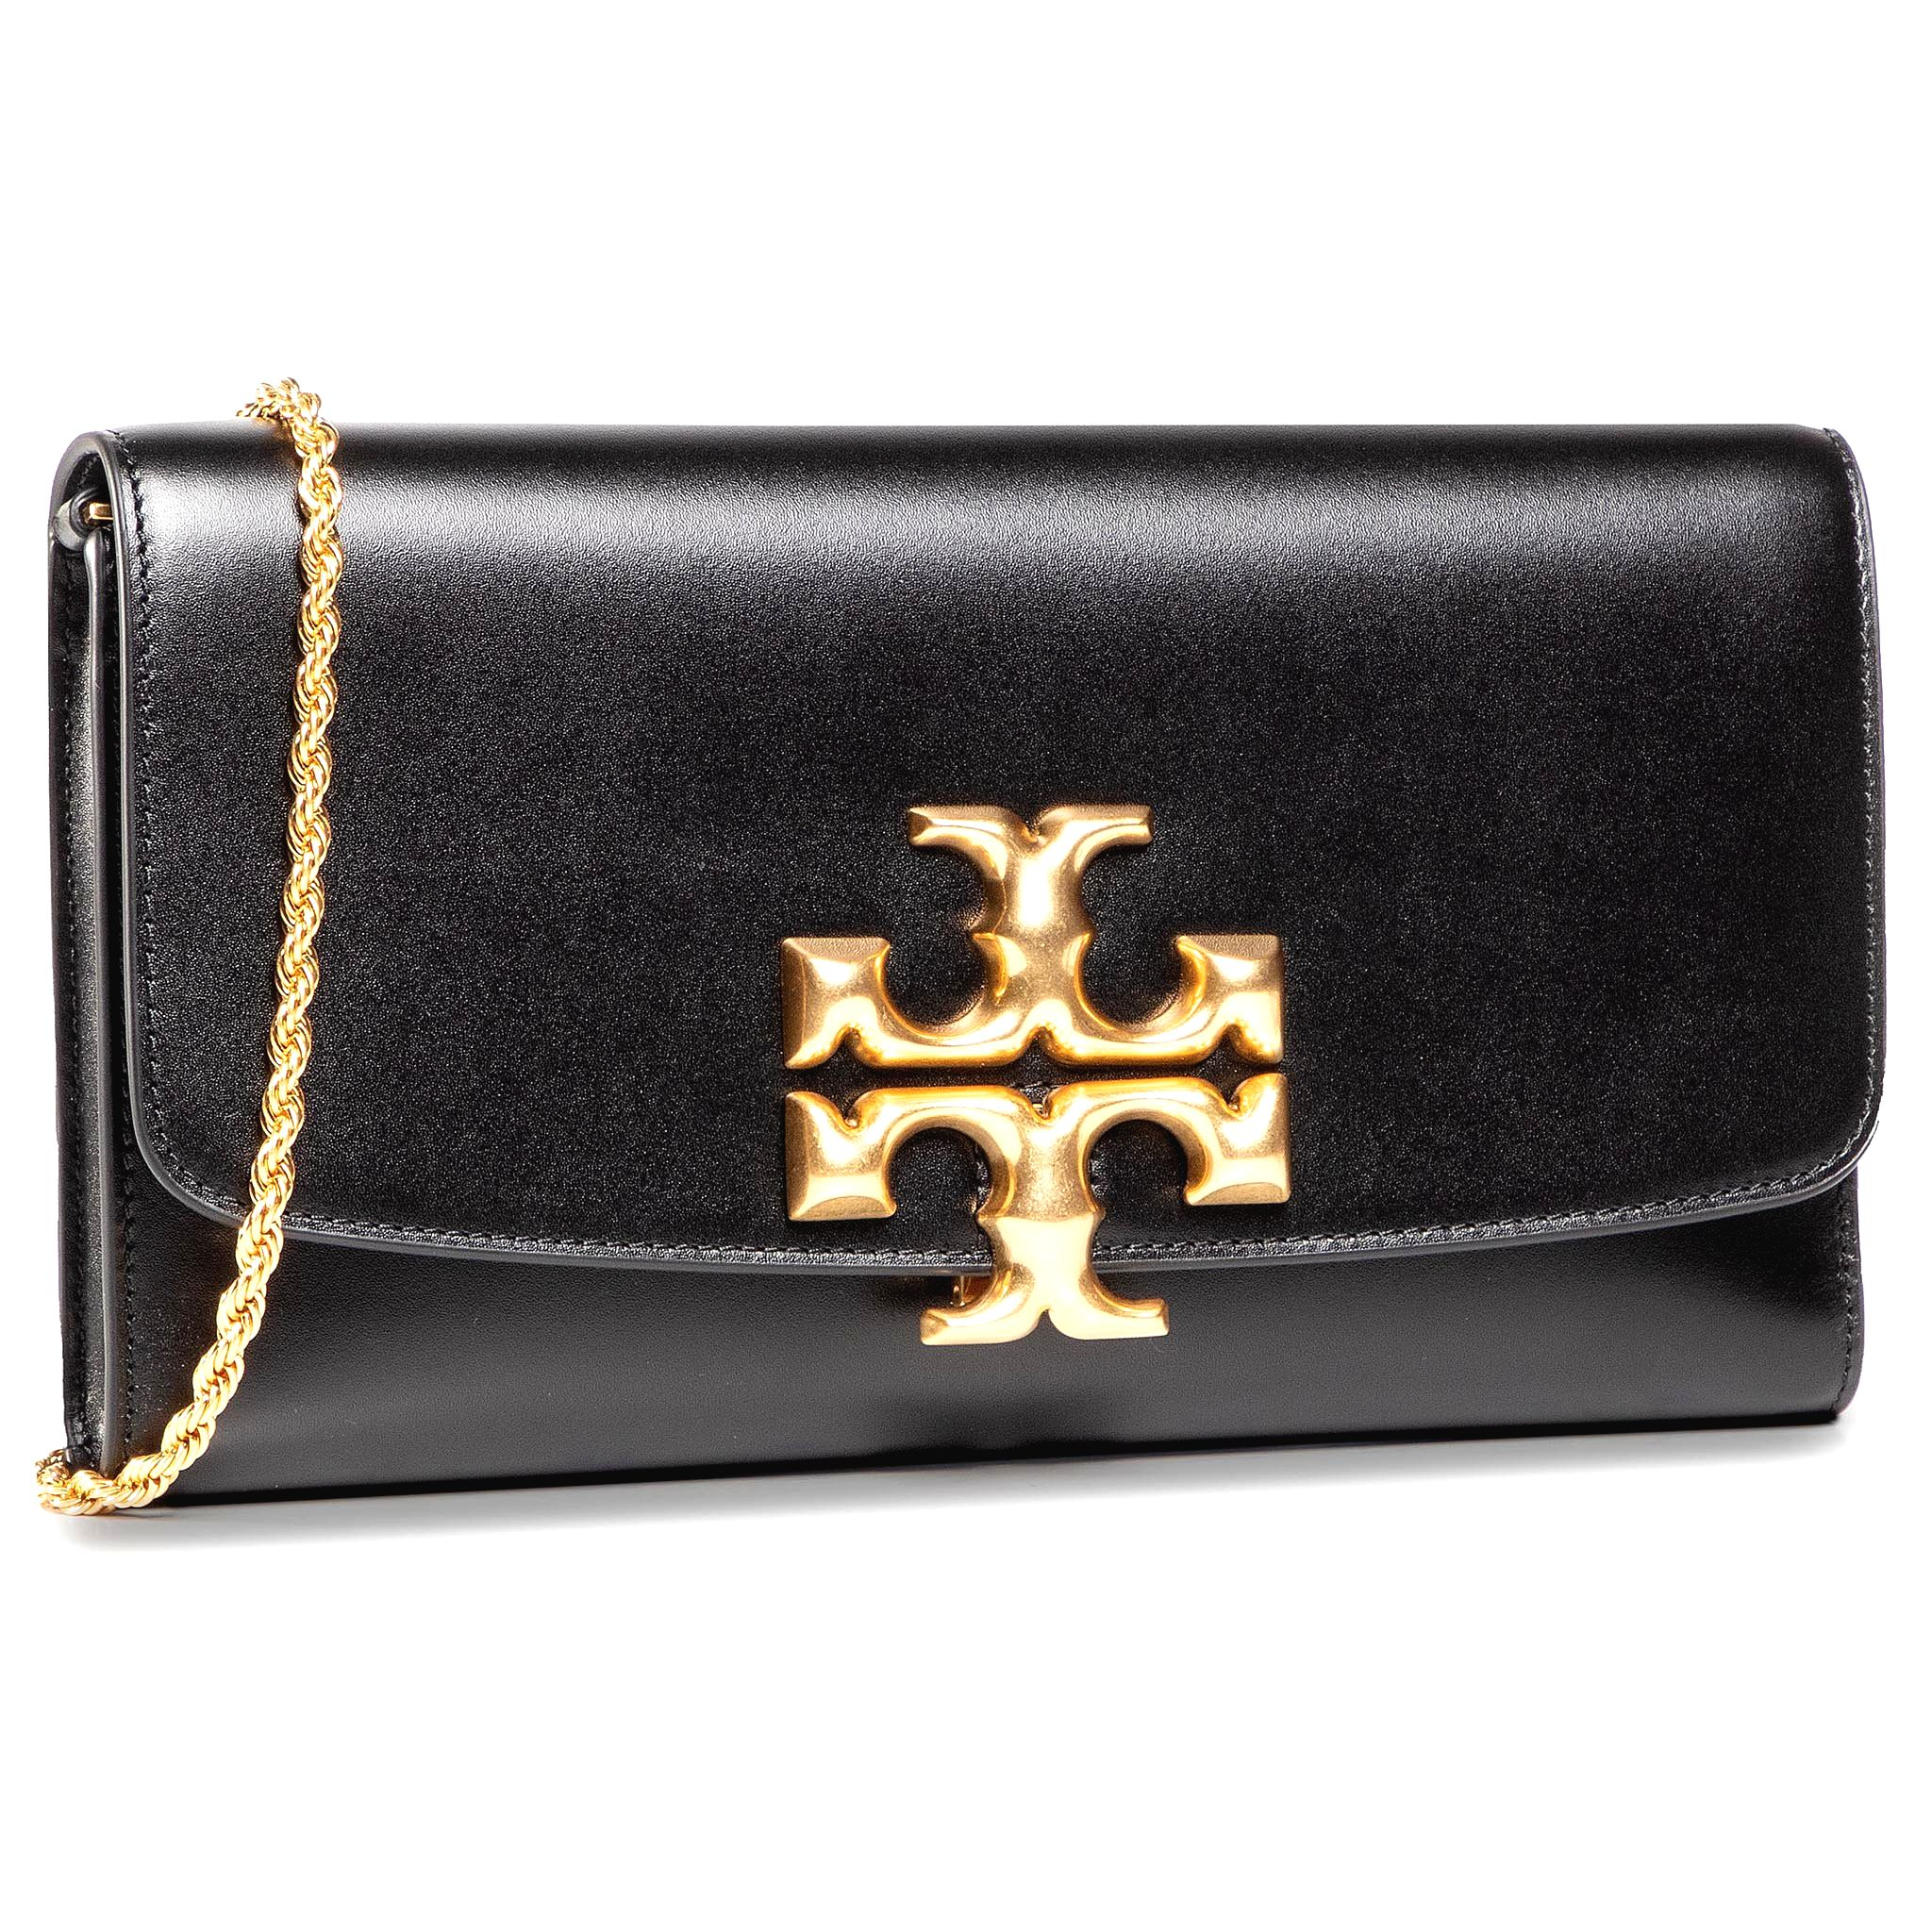 Kabelka TORY BURCH - Eleanor Clutch 73578 Black 001